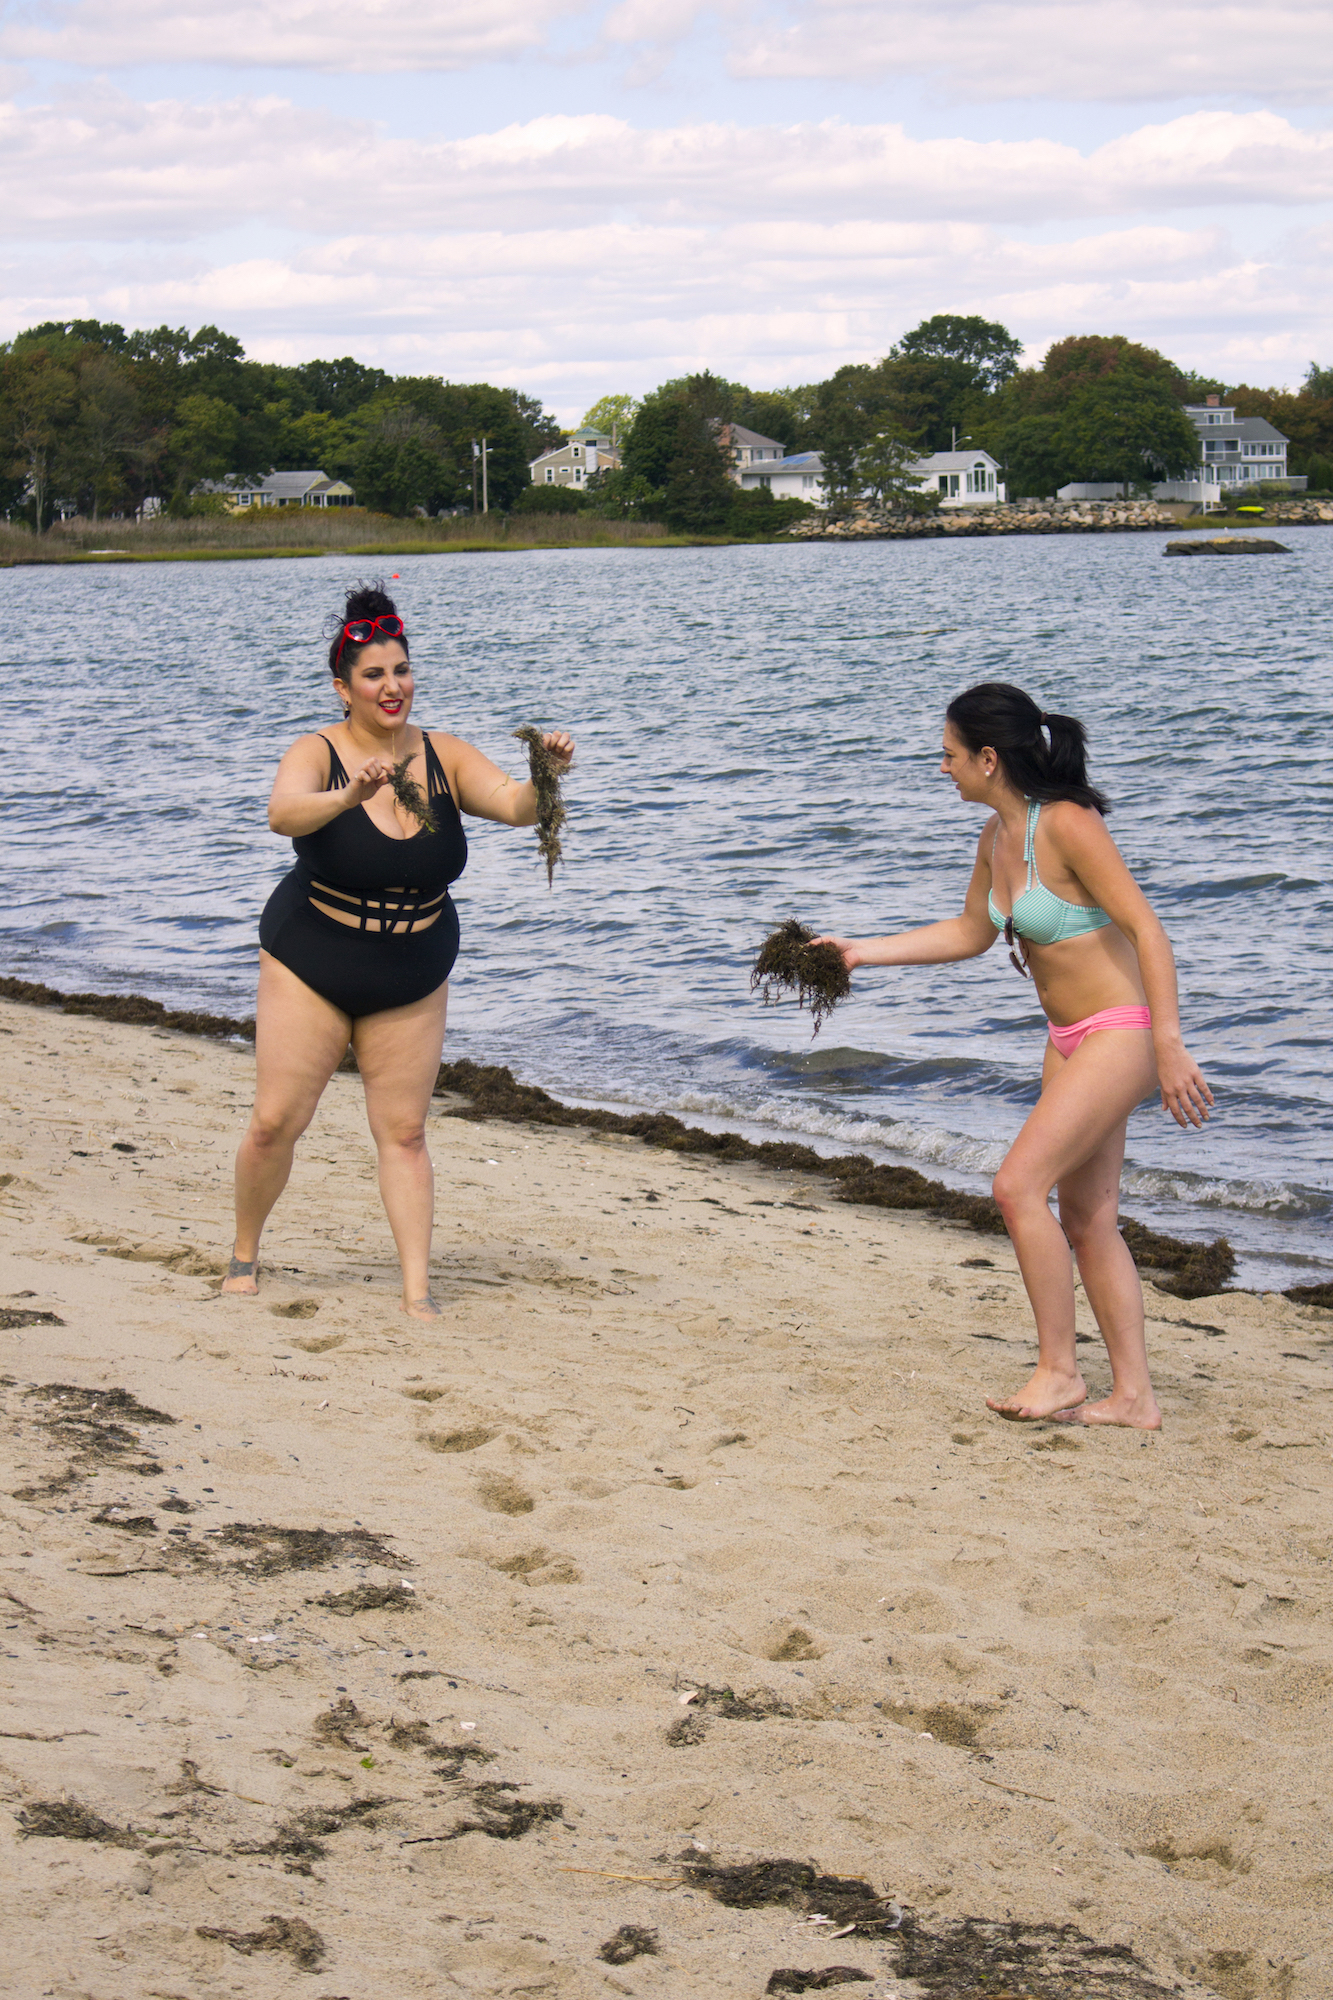 """Actors Alessandra Grima and Catalina Snape collect seaweed with which to """"pamper"""" Geena Matuson on the set of her production for comedic 'beach ads,' part of her 'Fauxmercials' series filming through 2017."""